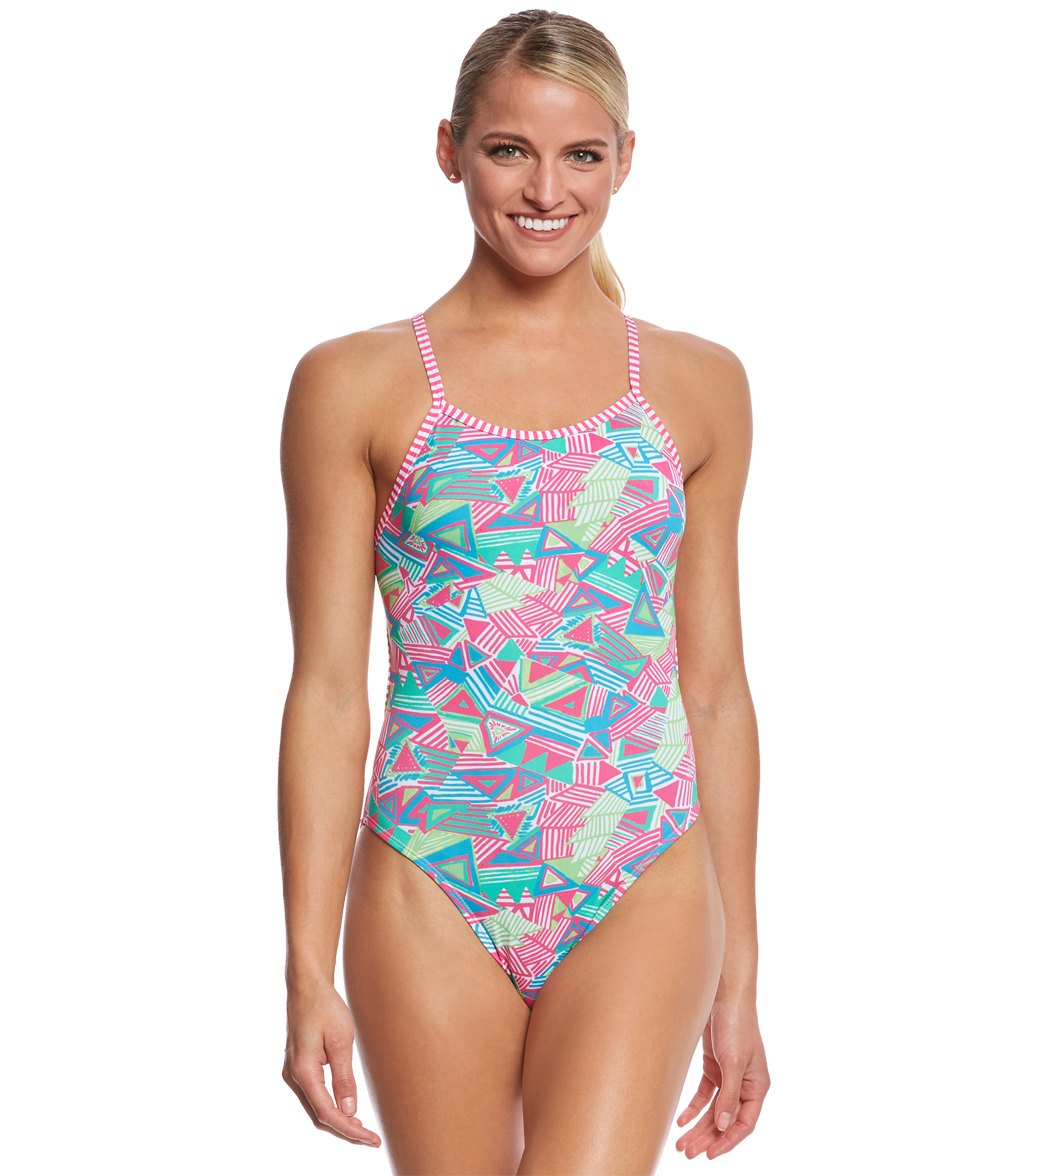 8afd87664fe46 ... Dolfin Uglies Women's Haywire String Back One Piece Swimsuit. Play  Video. MODEL MEASUREMENTS